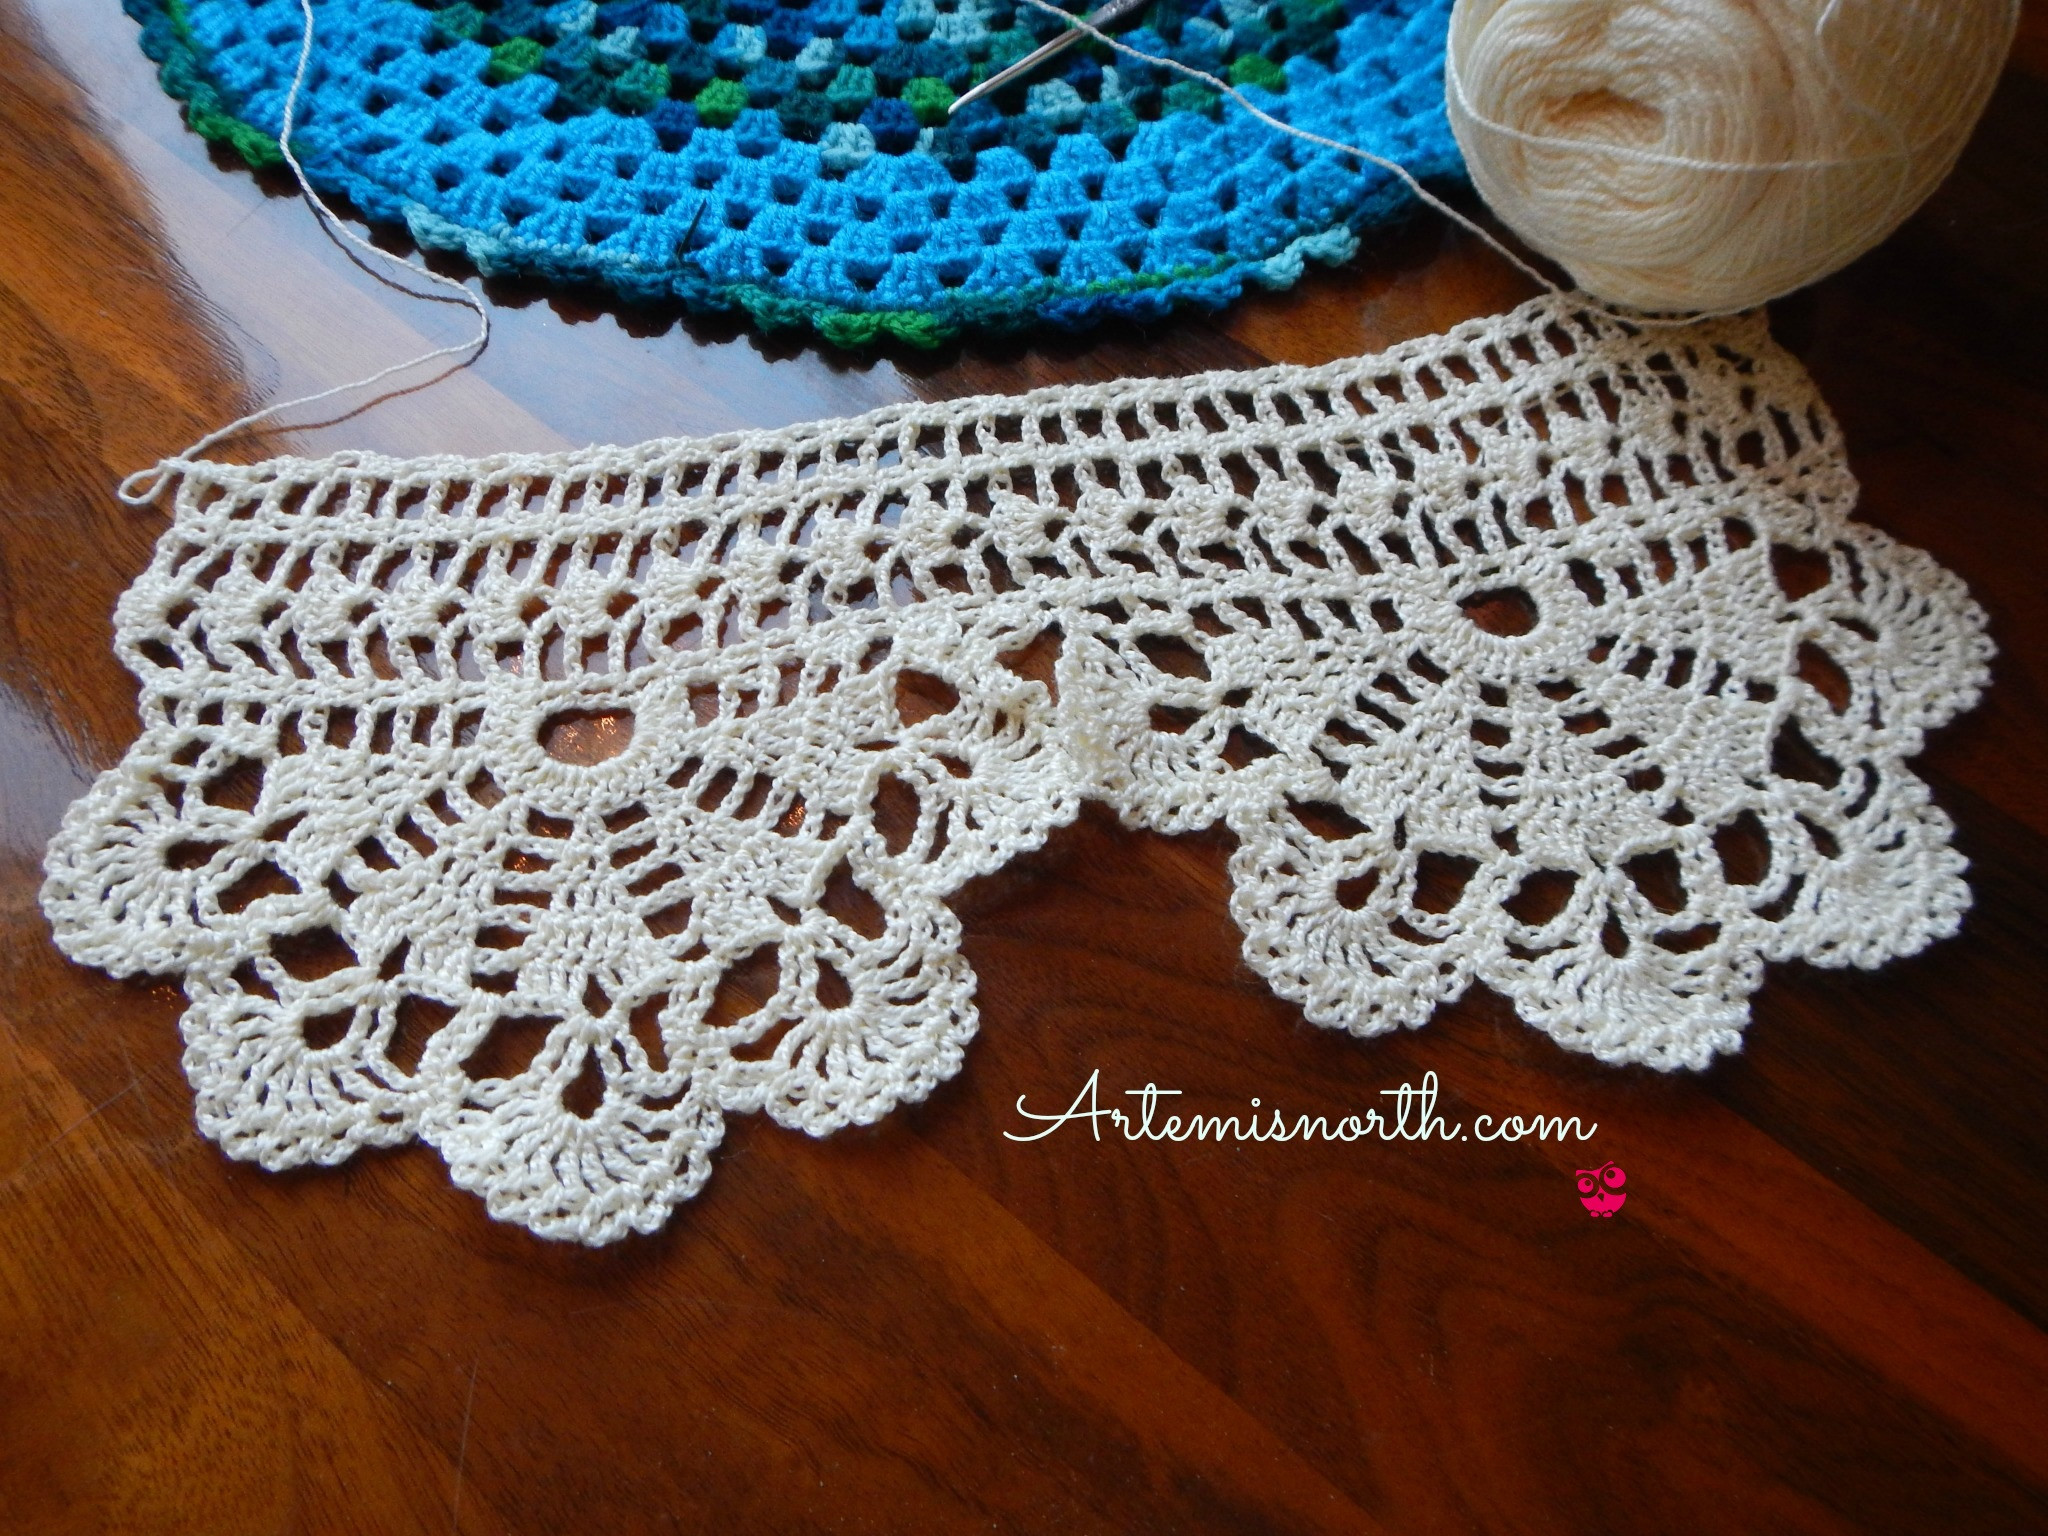 Crochet Lace Trimming Unique Lace Trim for Your Sheets and Pillowcases Of Superb 50 Pics Crochet Lace Trimming